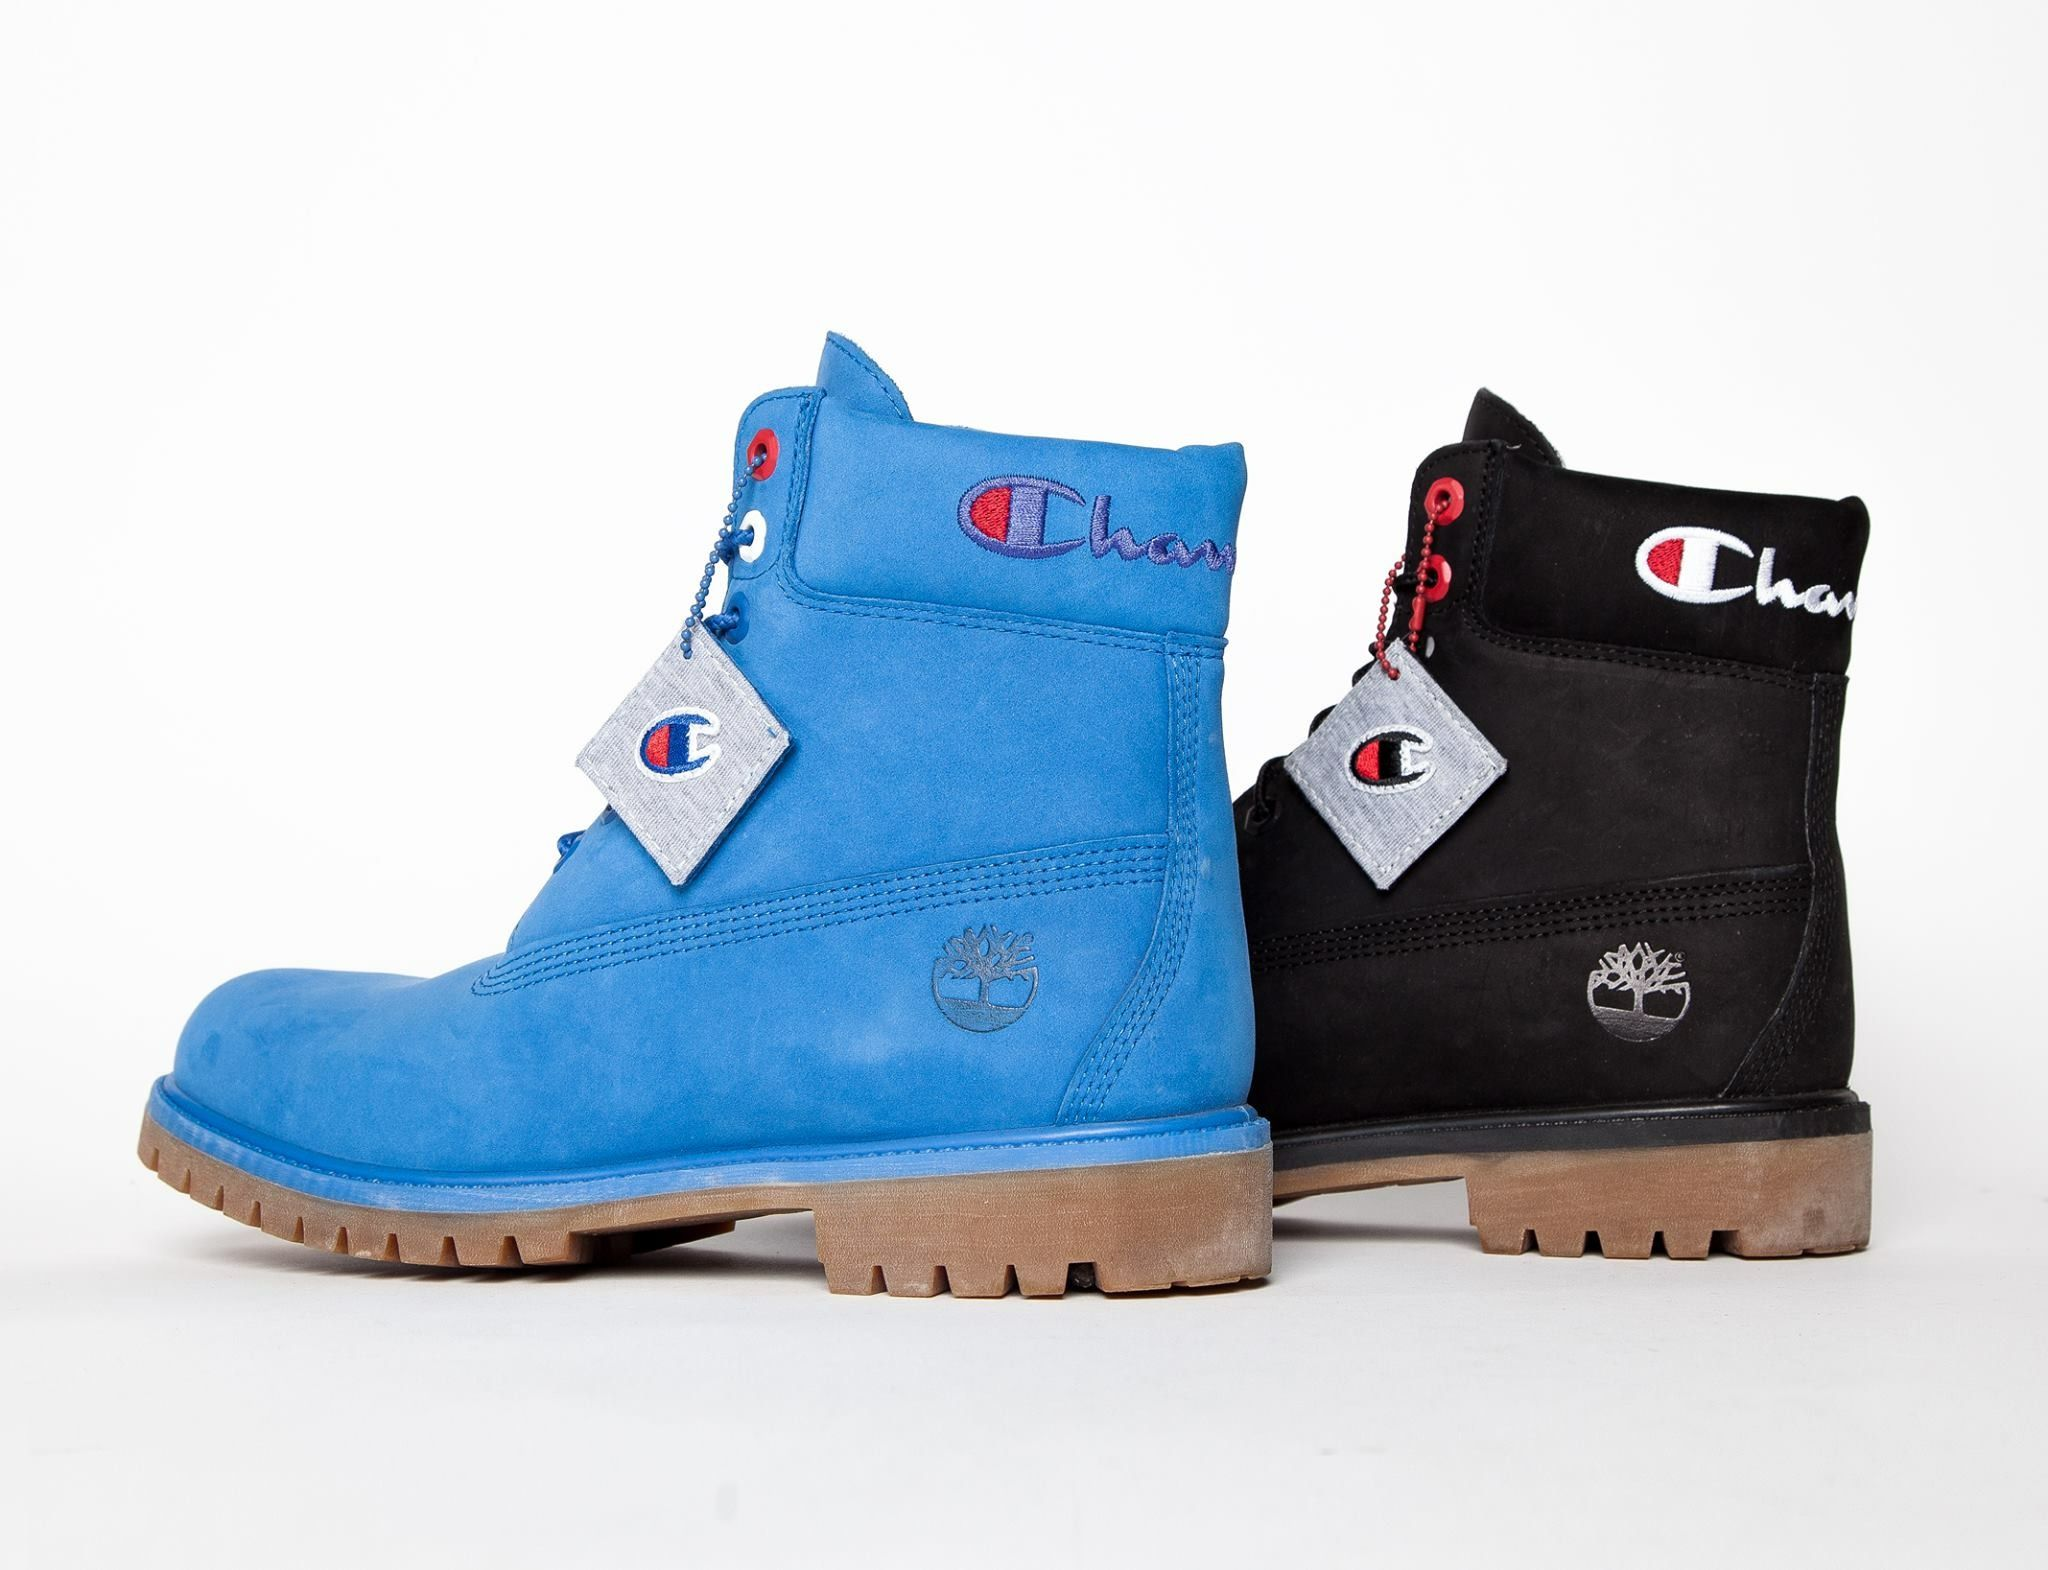 b393b77bfd6ce Timberland Champion collab Jordan Shoes